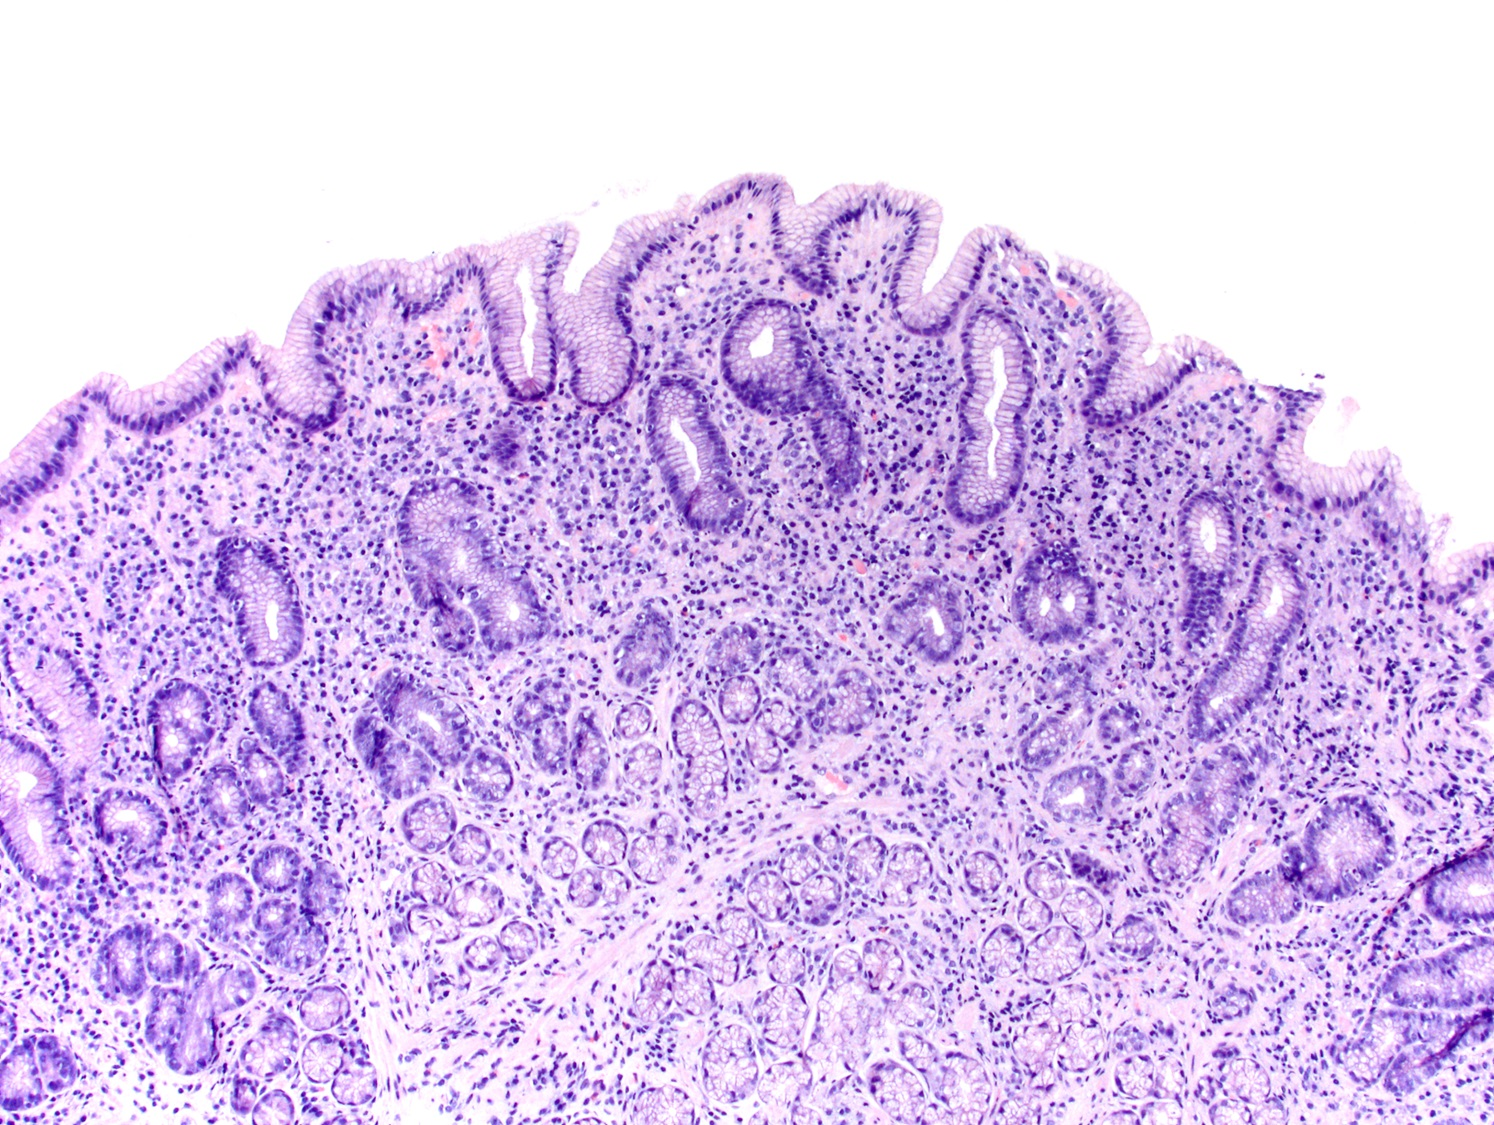 Histology of H. pylori stomach antrum